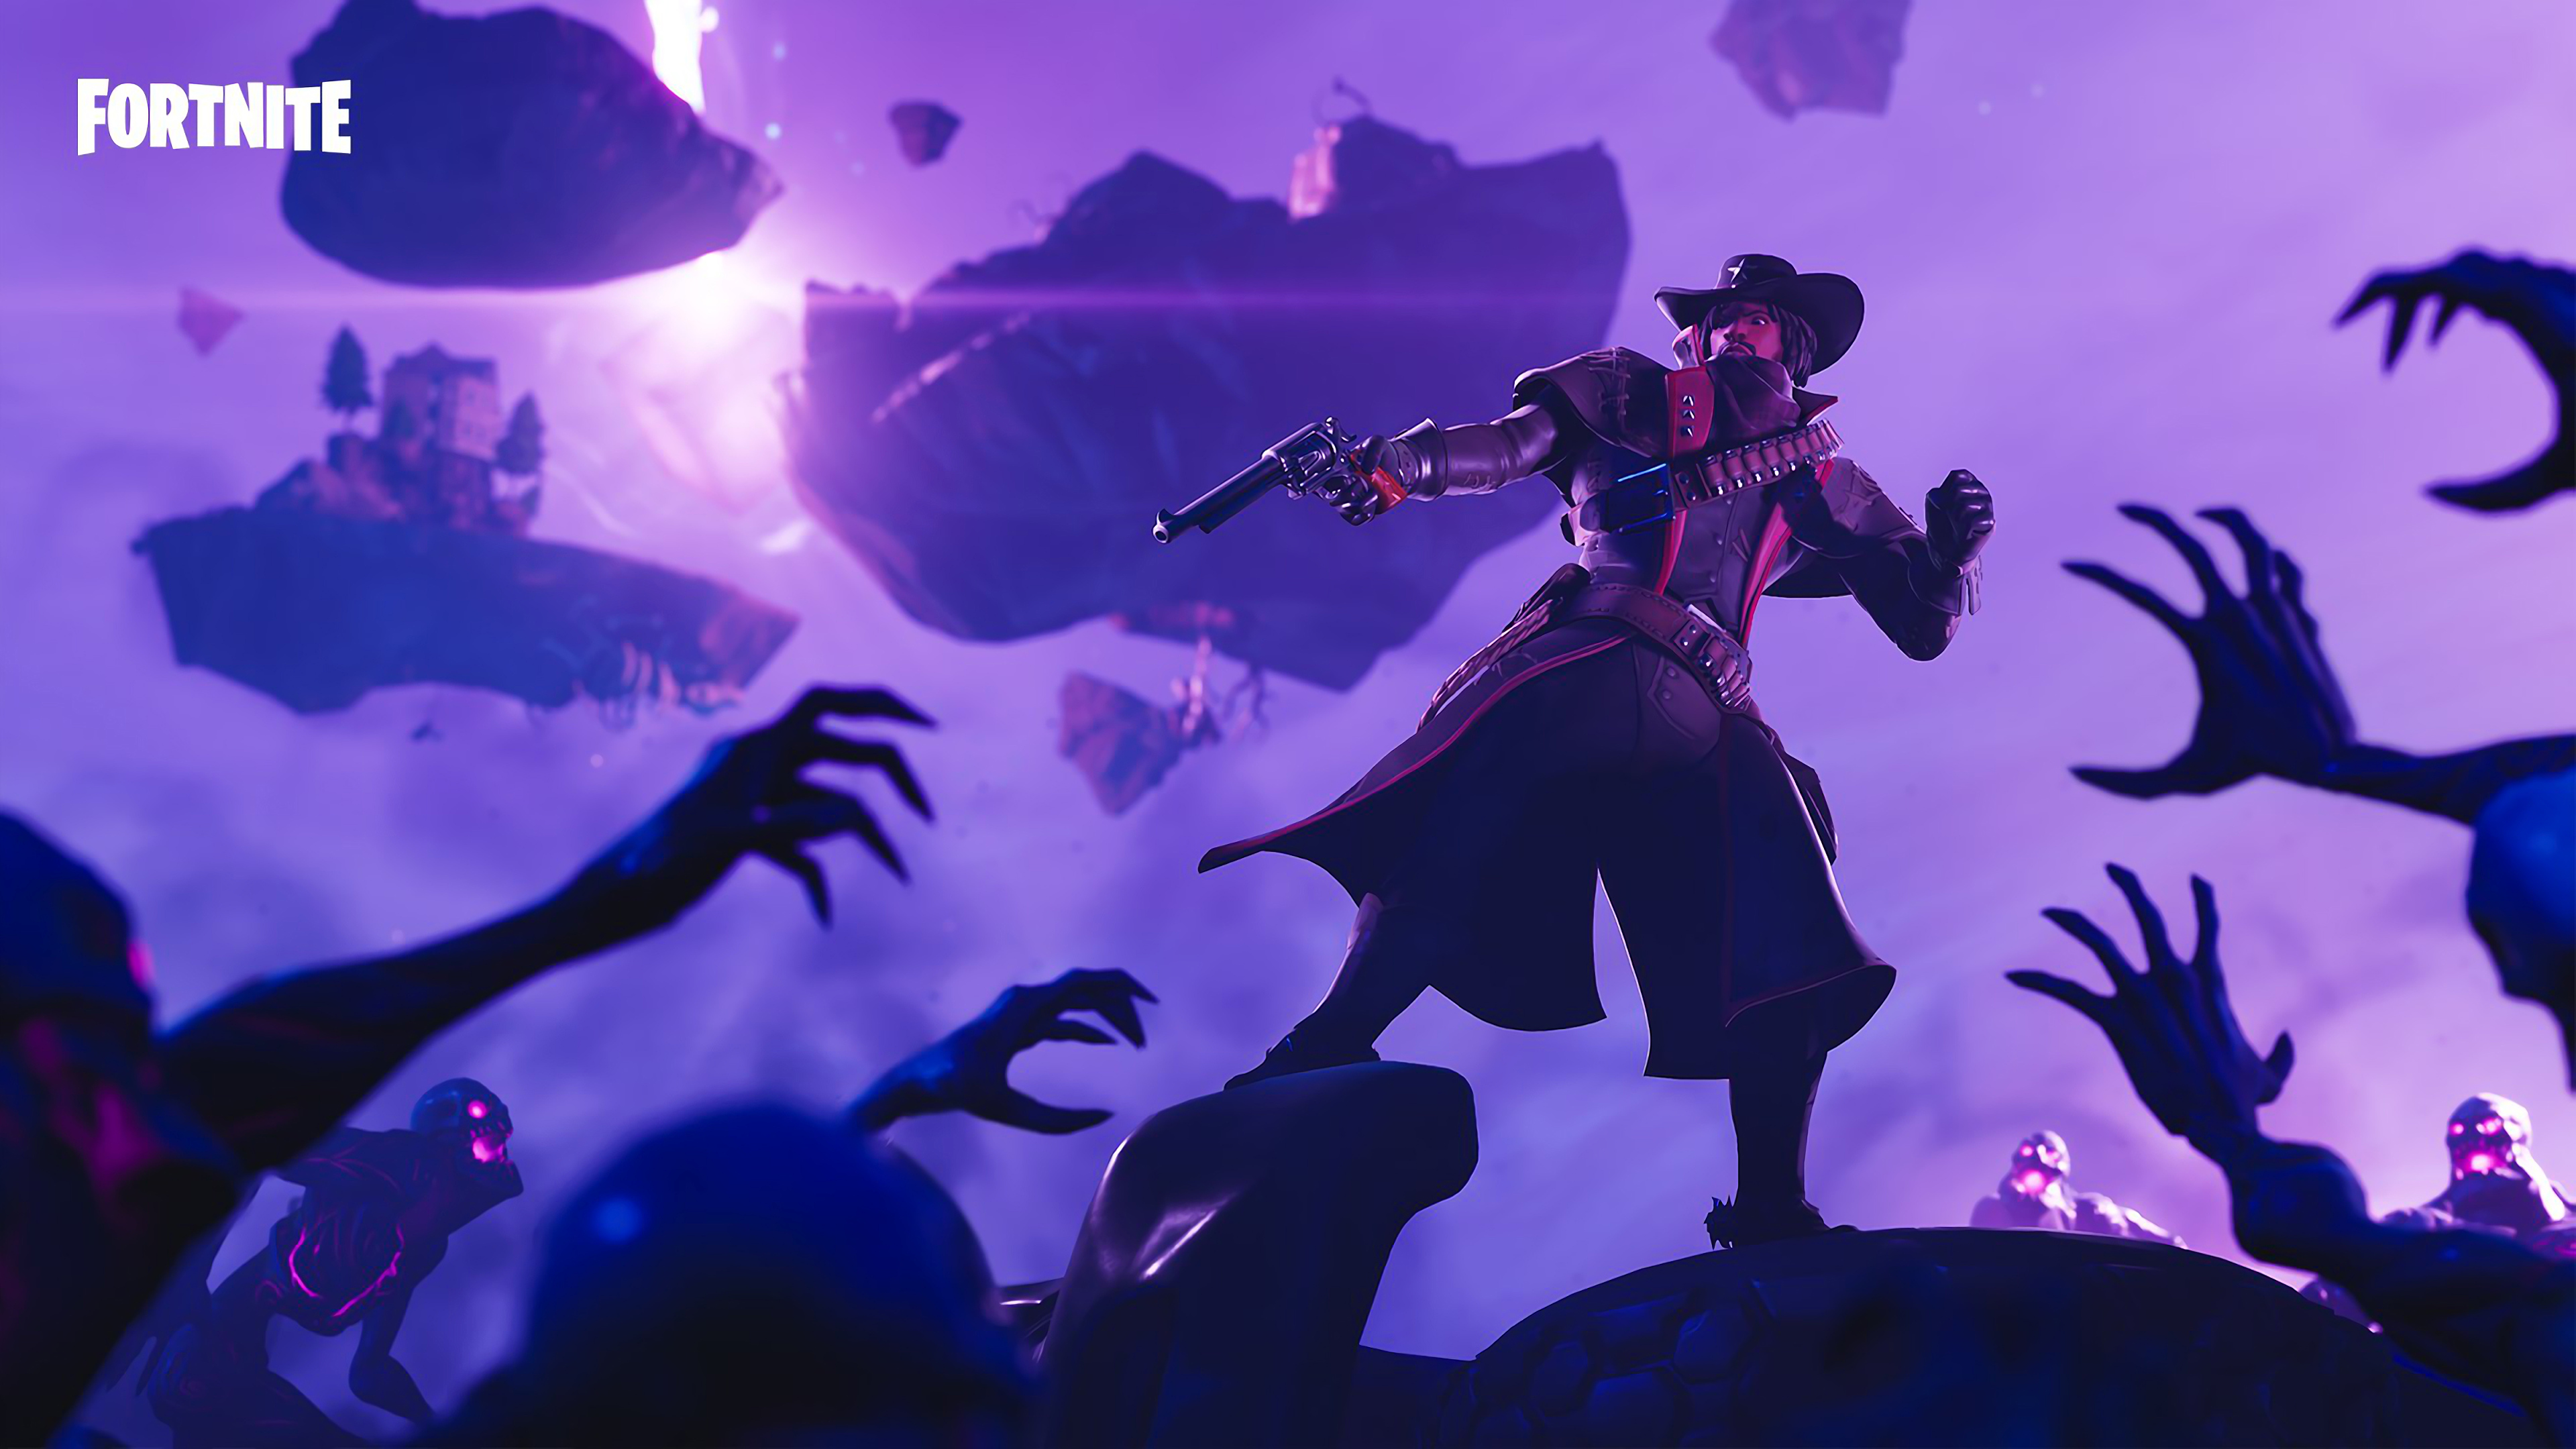 deadfire fortnite battle royale 1541295229 - Deadfire Fortnite Battle Royale - hd-wallpapers, games wallpapers, fortnite wallpapers, fortnite season 6 wallpapers, 4k-wallpapers, 2018 games wallpapers